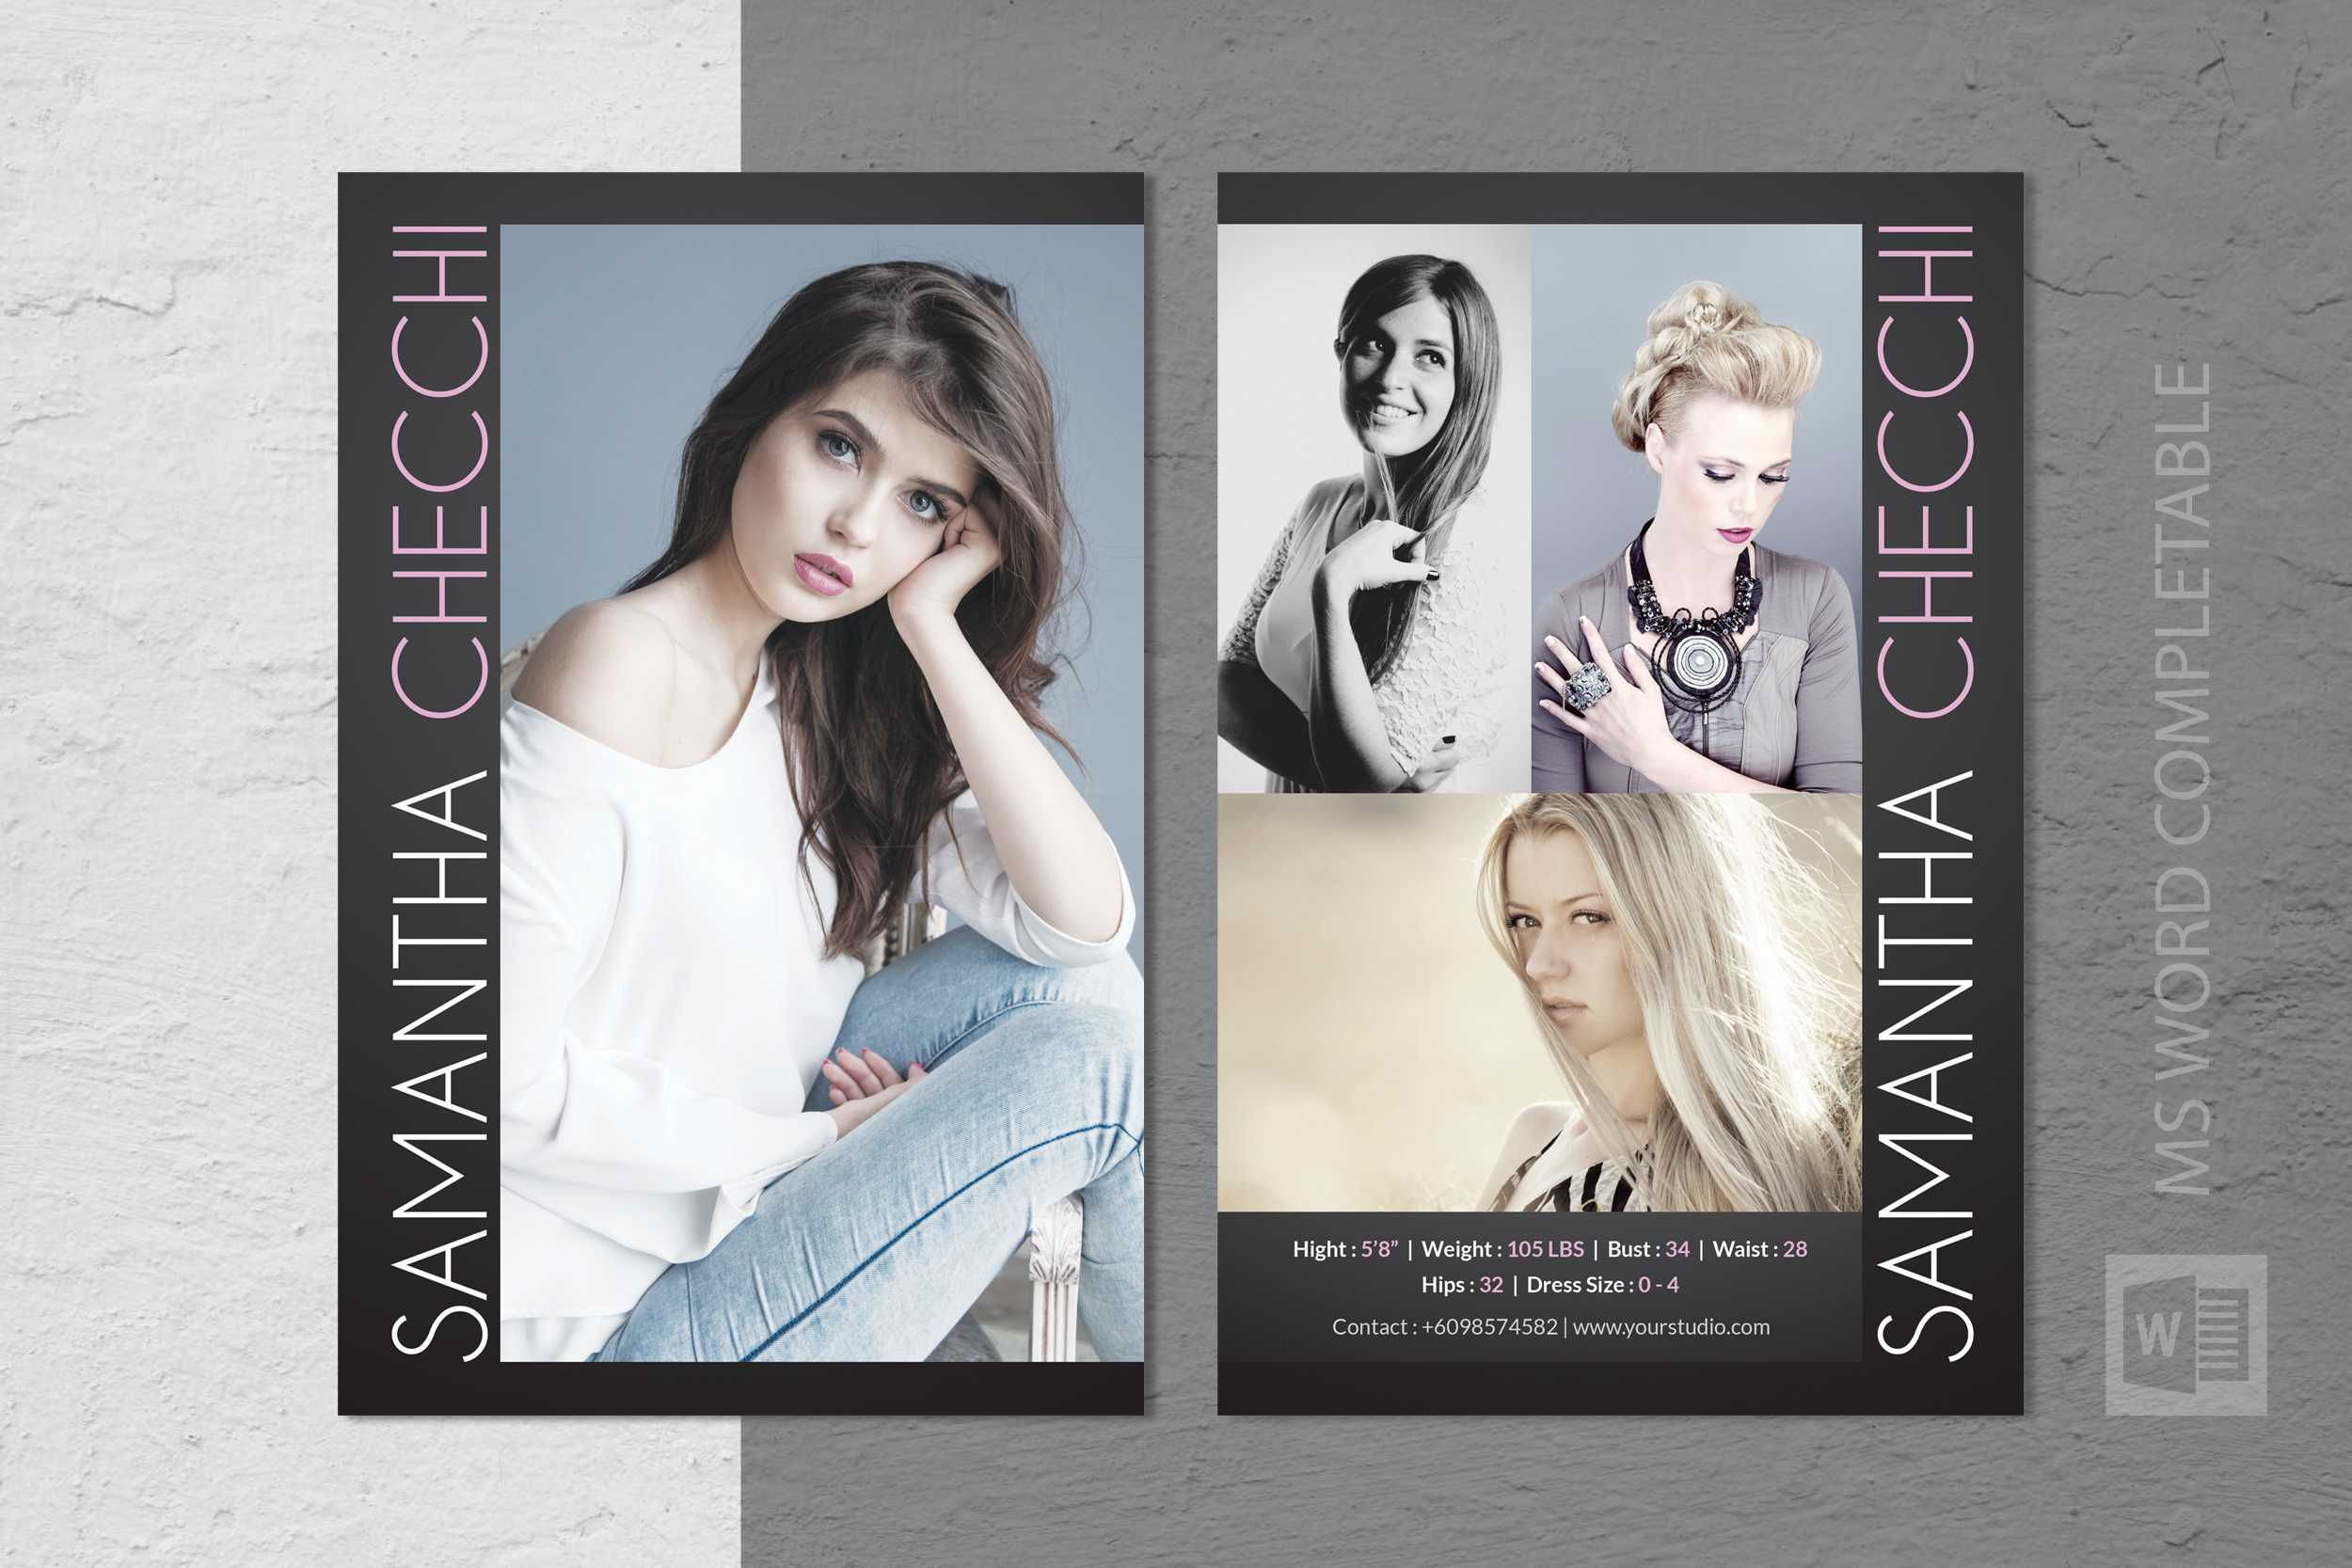 015 Model Comp Card Template Ideas Outstanding Psd Free Regarding Free Comp Card Template